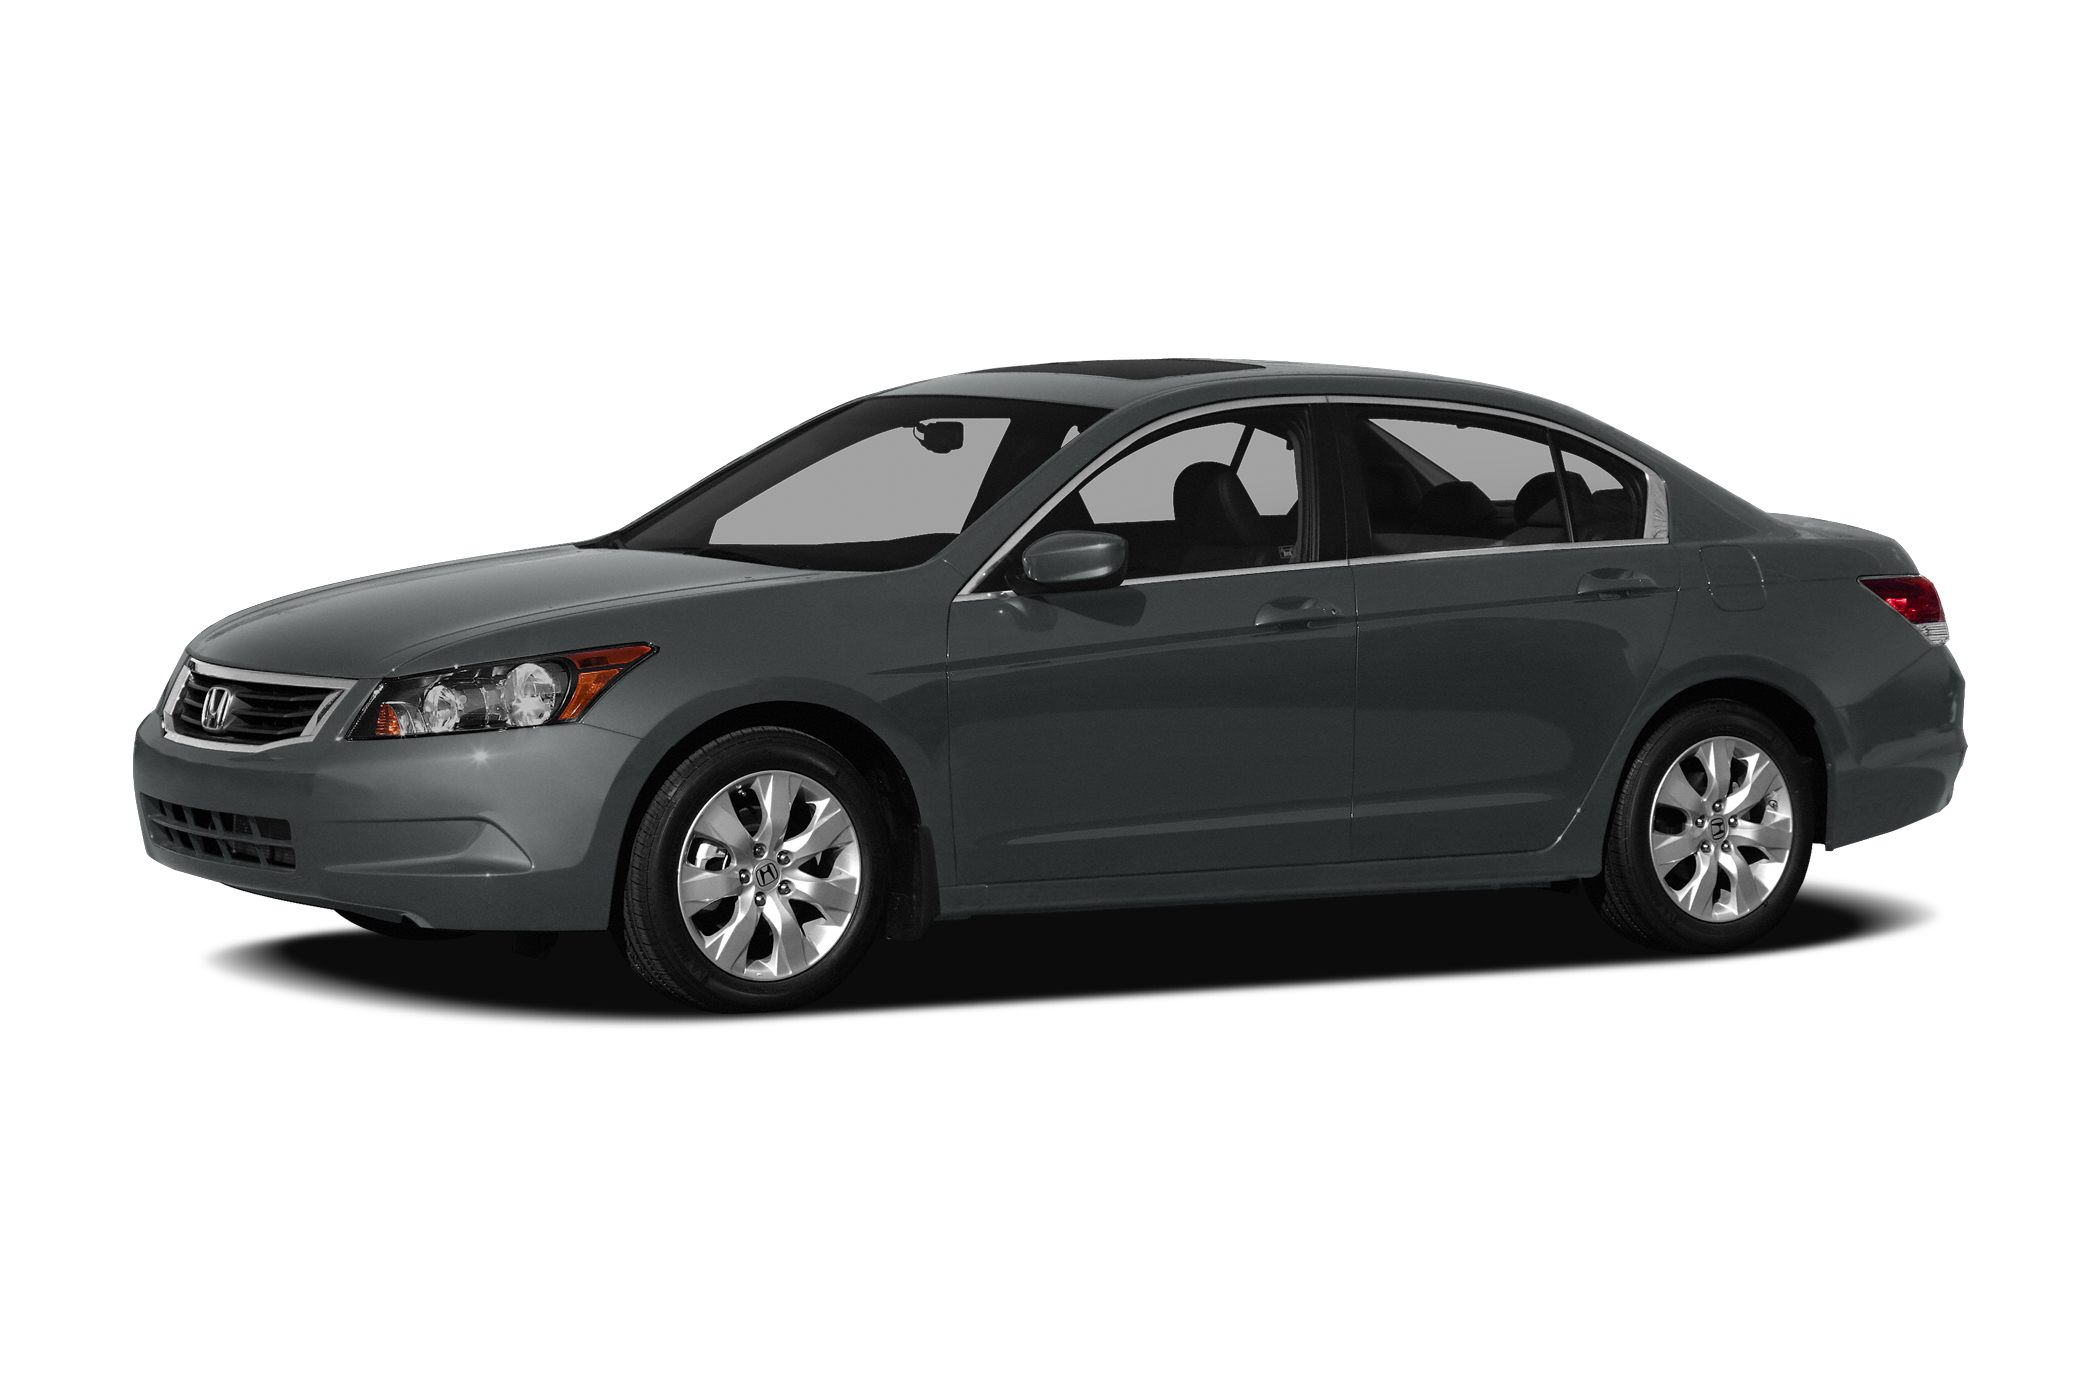 2009 Honda Accord  In a class by itself Step into the 2009 Honda Accord A practical vehicle that